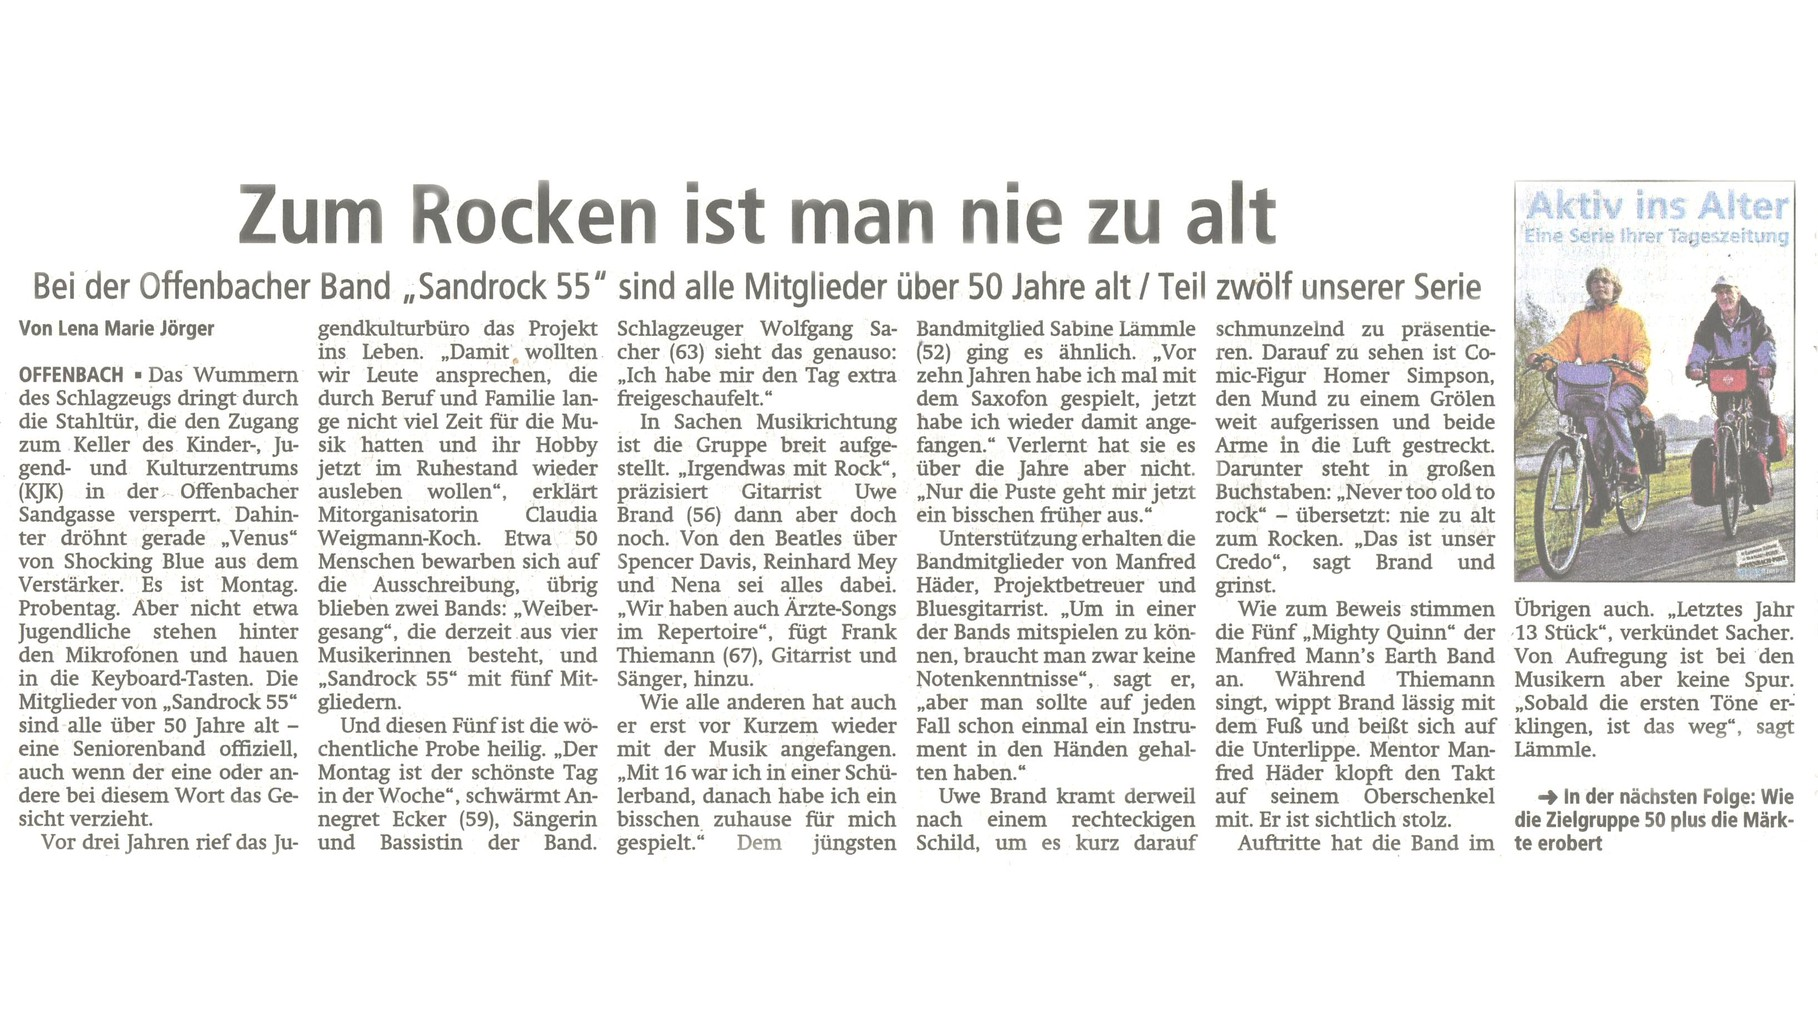 Offenbach Post, 24. April 2014